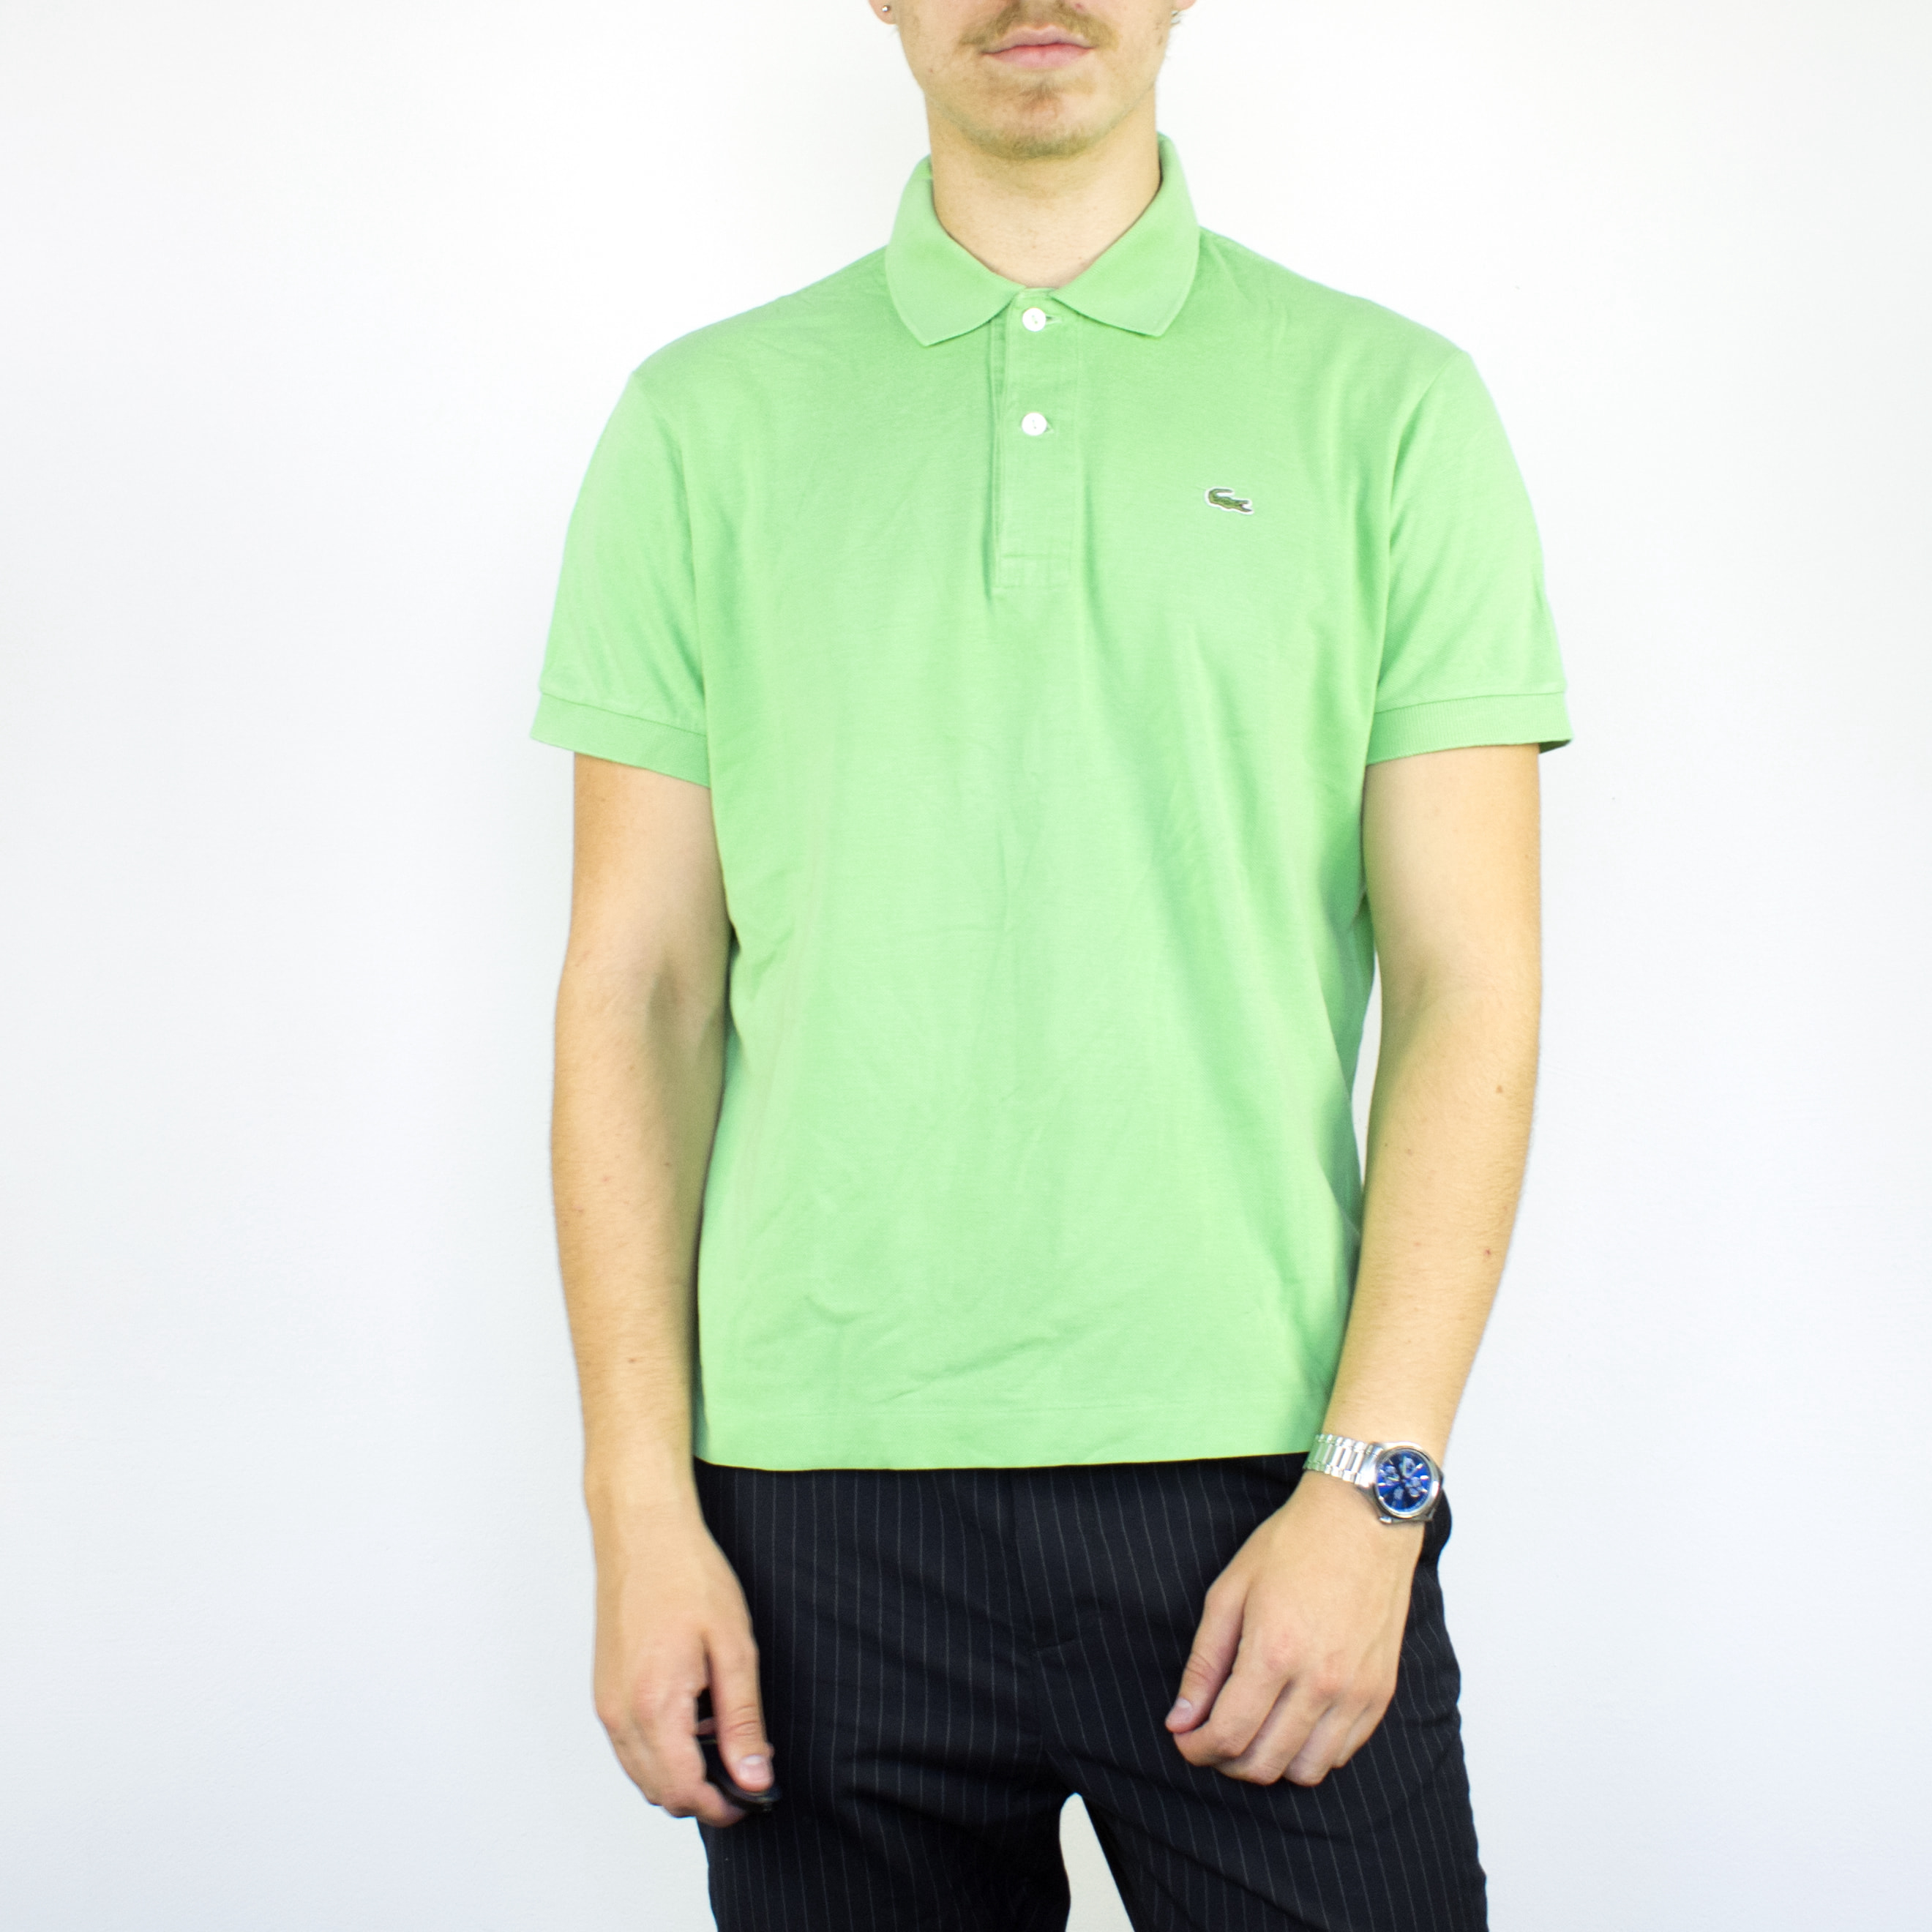 Unisex Vintage Lacoste polo shirt in green has a small logo on the front